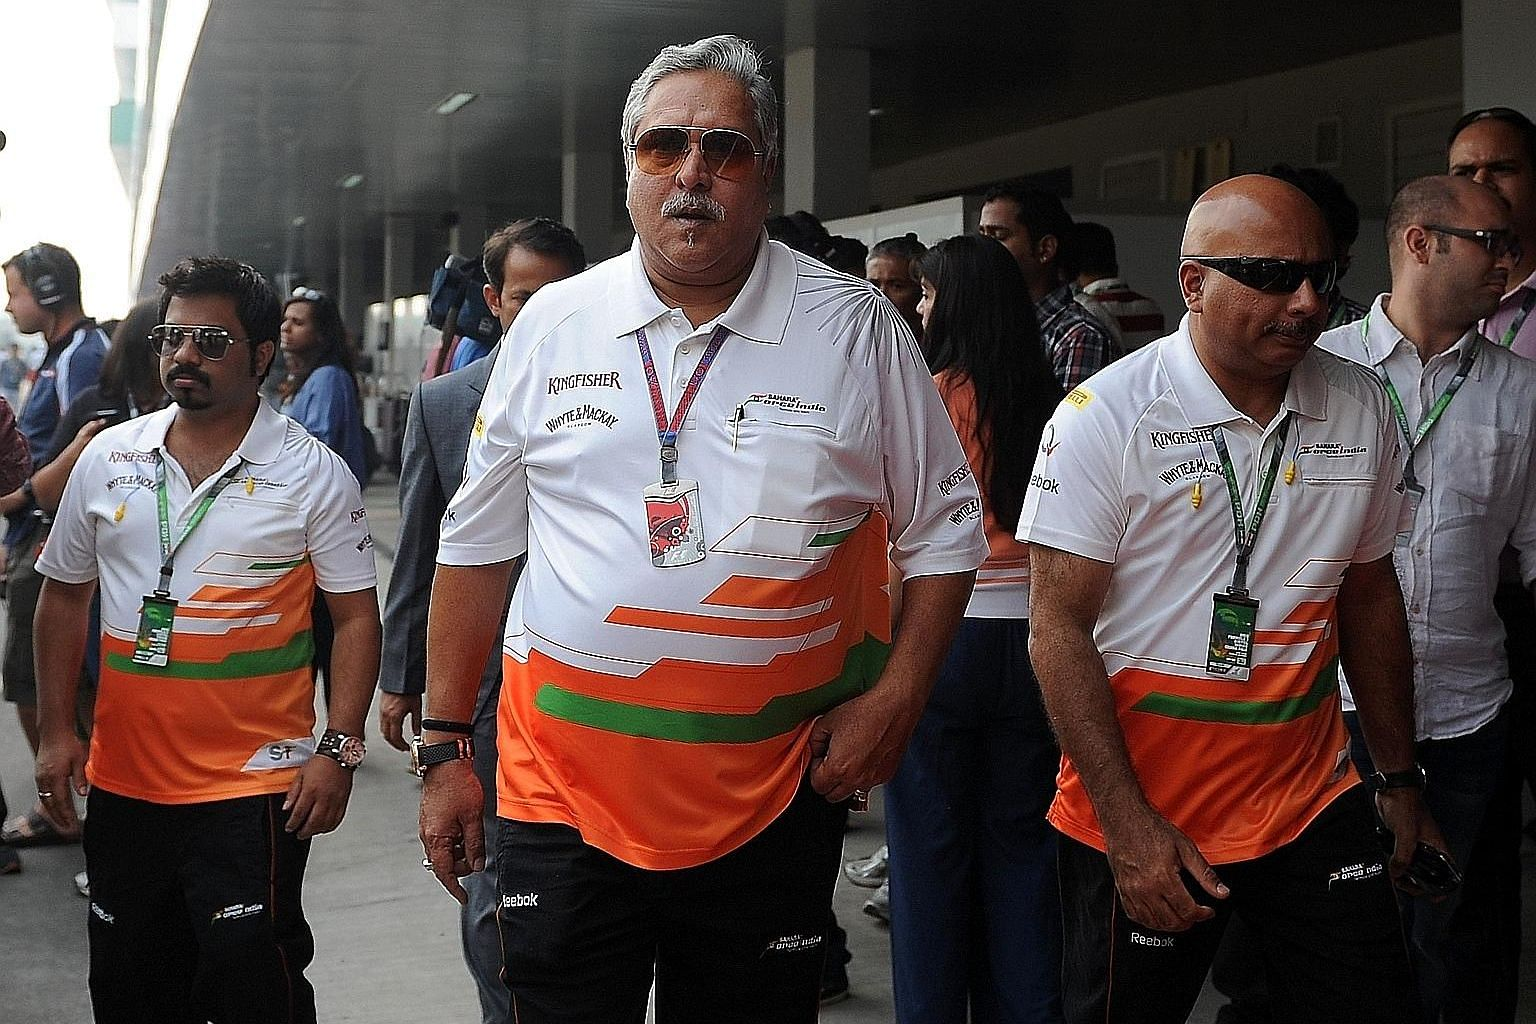 Kingfisher Airlines founder Vijay Mallya (centre) at a 2012 Formula One event. Last week, he was arrested by Scotland Yard and then released on bail in what the Indian authorities said was the beginning of extradition proceedings.